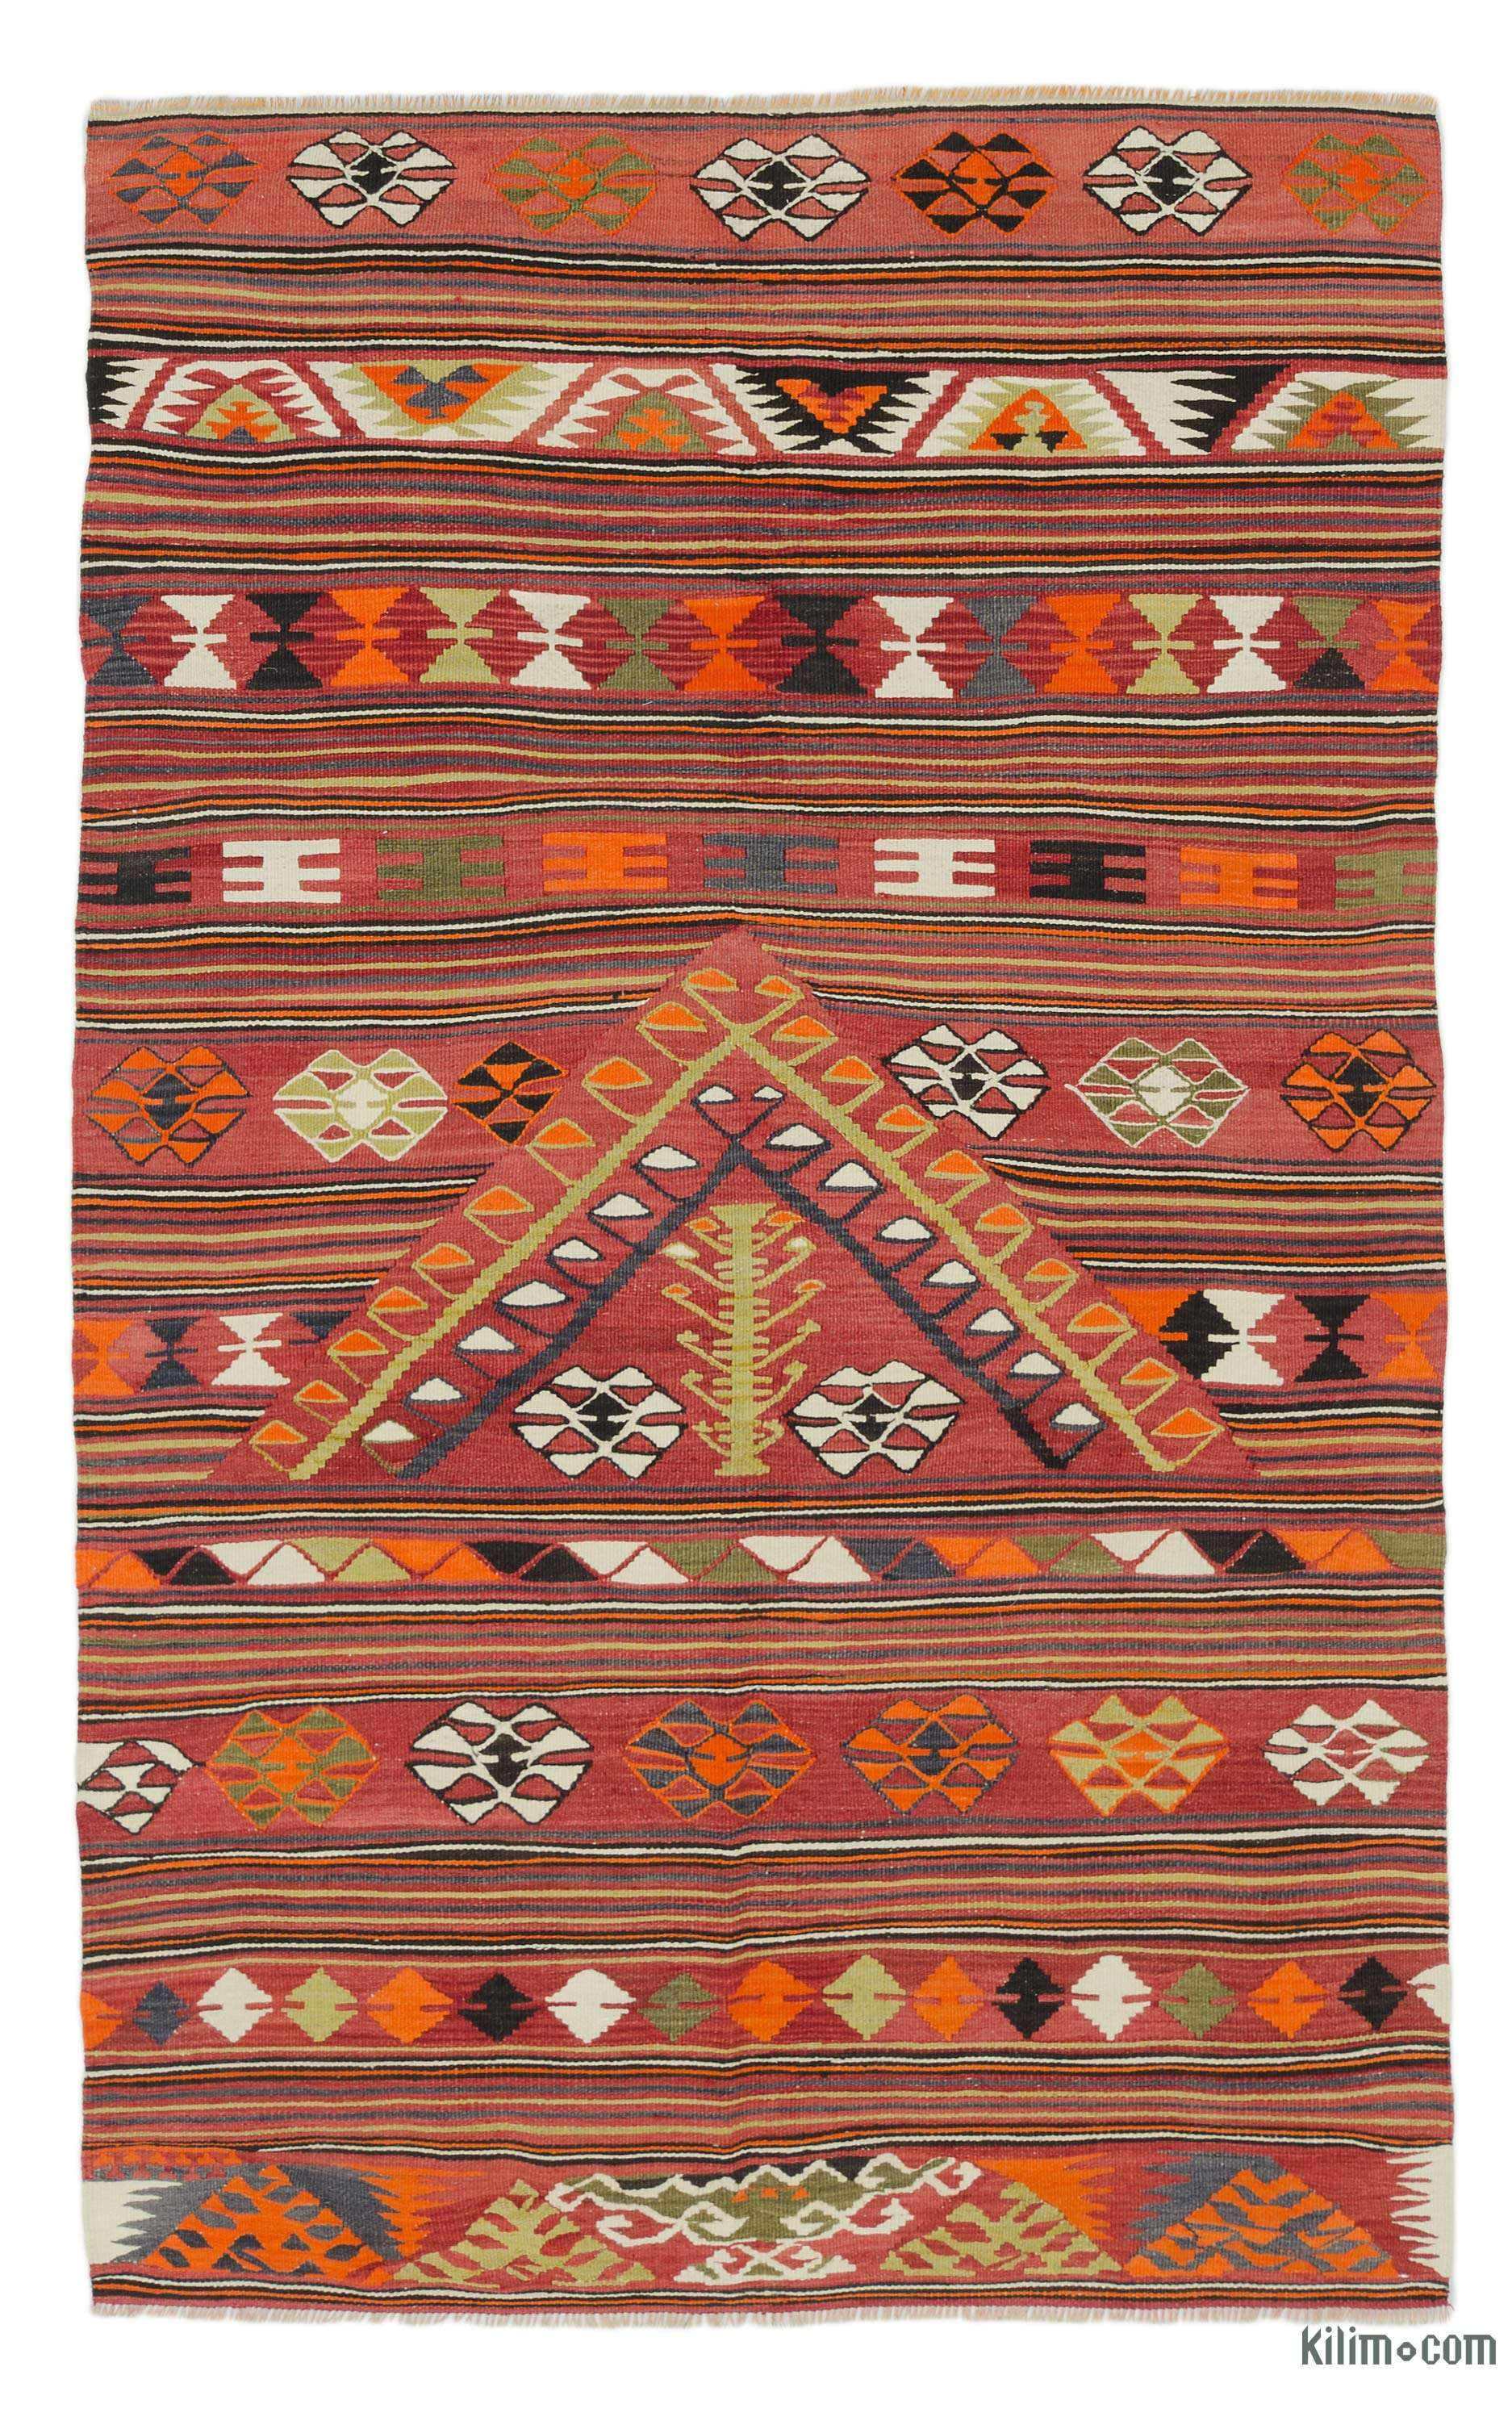 0e0128c37 K0037842 Multicolor Vintage Konya Kilim Rug   Kilim.com: The Source for  Authentic Vintage Rugs, Kilims, Overdyed Oriental Rugs, Hand-woven Turkish  Rugs, ...